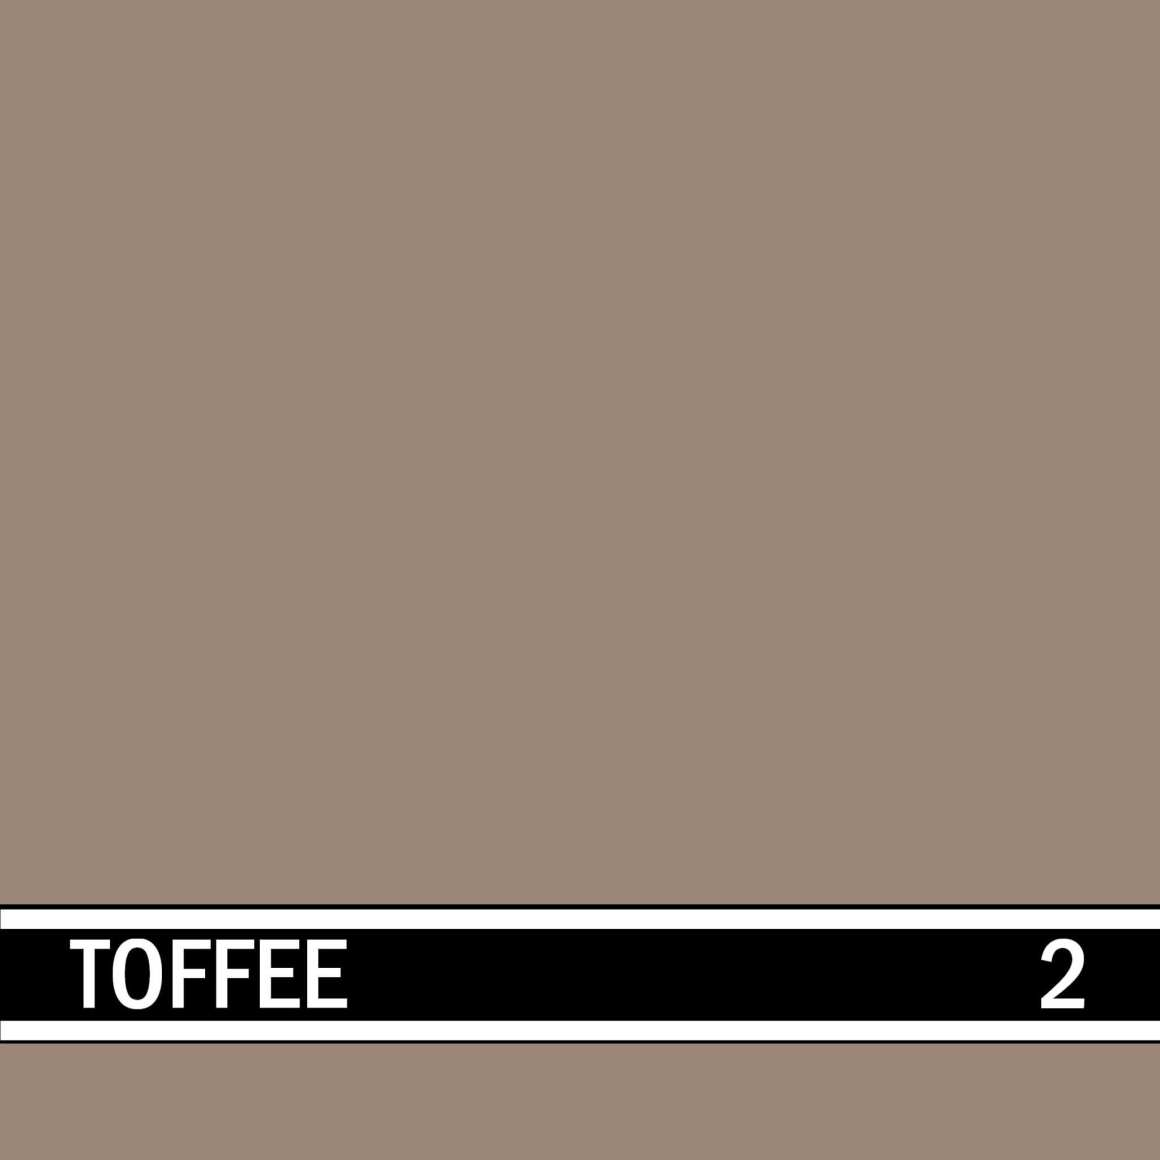 Toffee integral concrete color for stamped concrete and decorative colored concrete